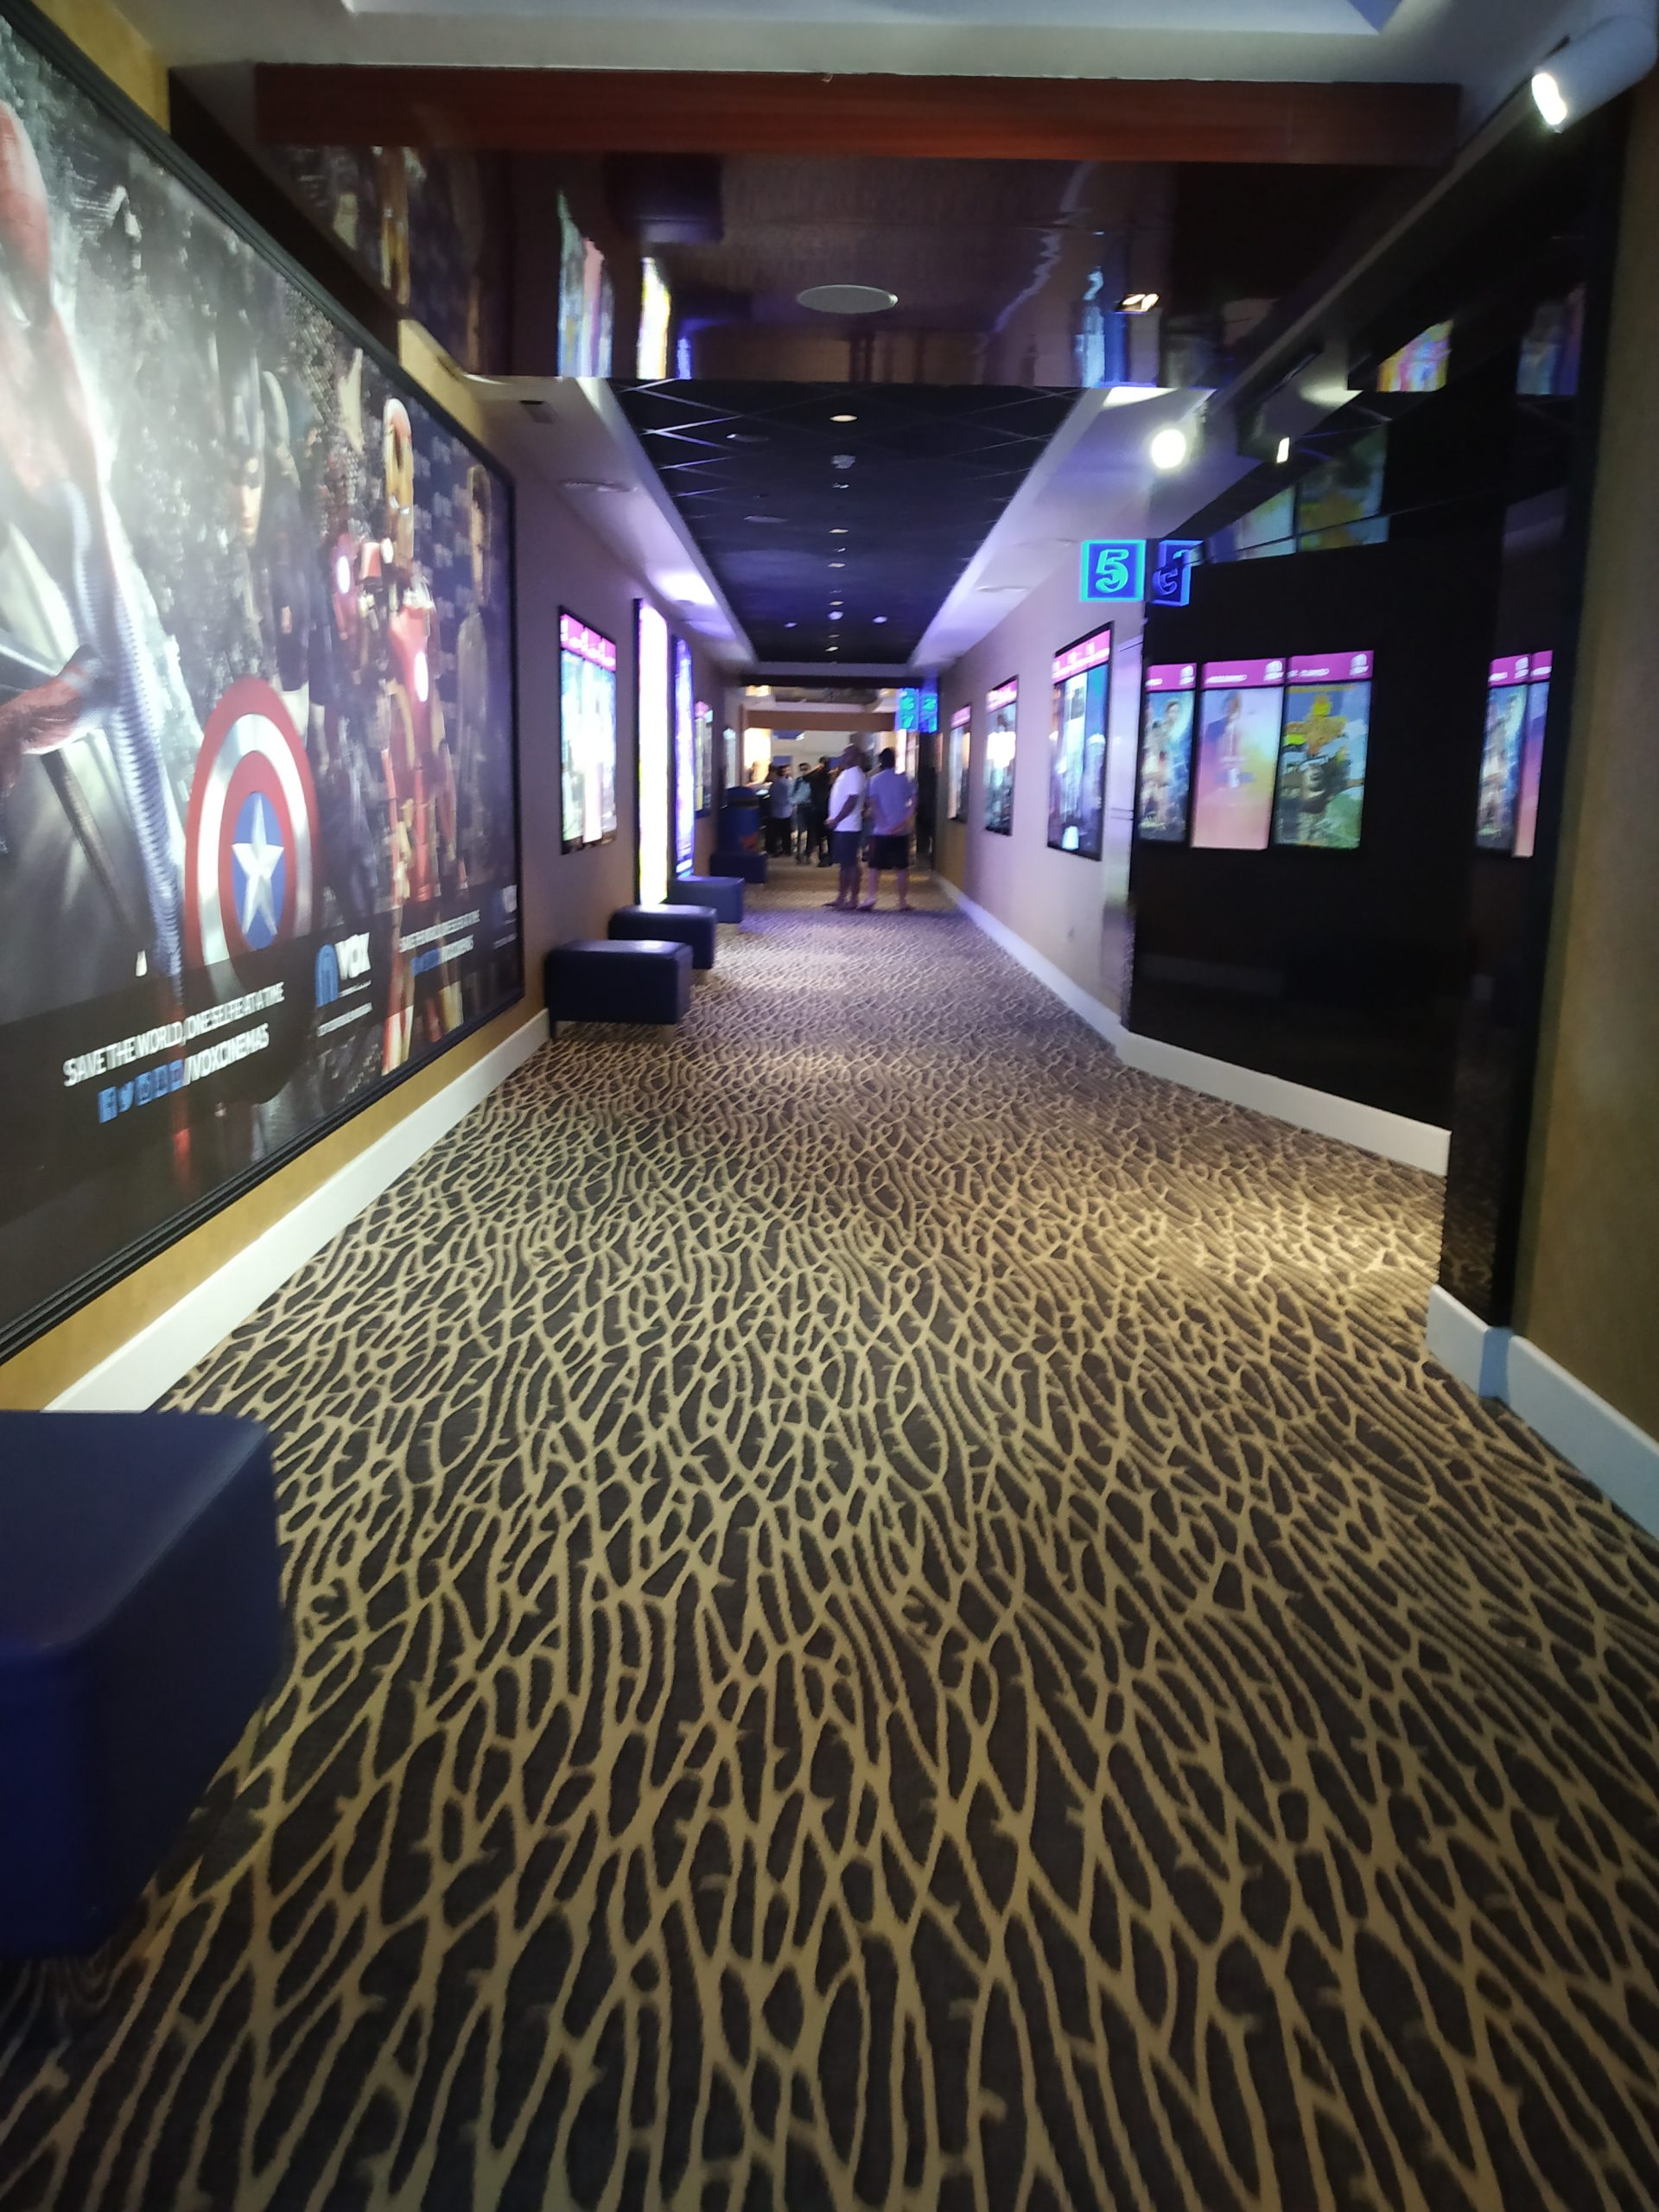 Gallery of a multiplex theatres